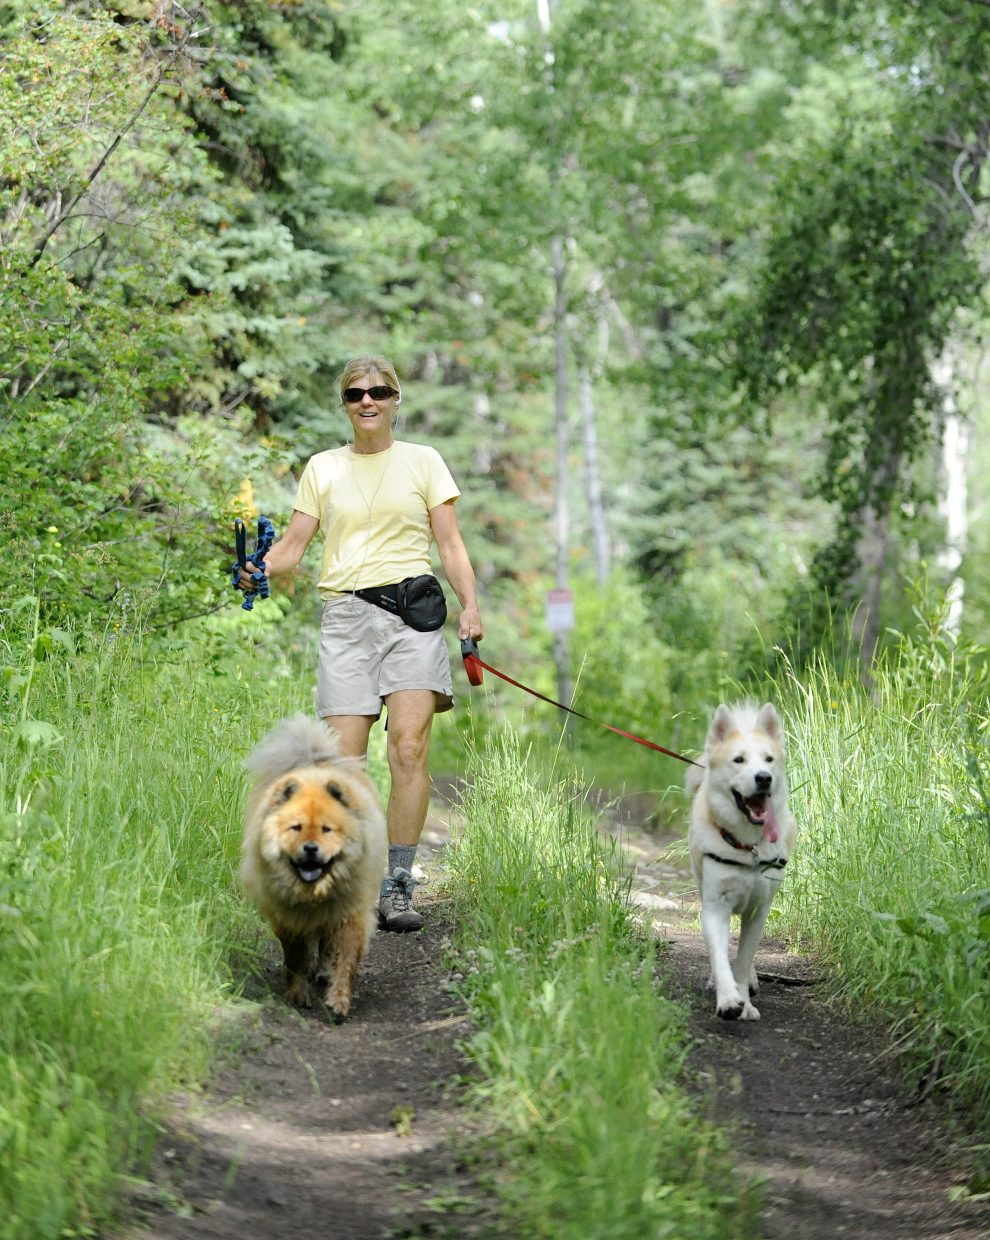 Sue Swain walks down Agate Creek Trail Wednesday morning with Nika, left, and Berkeley. Swain, who lives in the nearby Agate Creek Preserve, said she rarely sees other hikers in the area that's the subject of ongoing litigation between the city of Steamboat Springs and Humble Ventures.